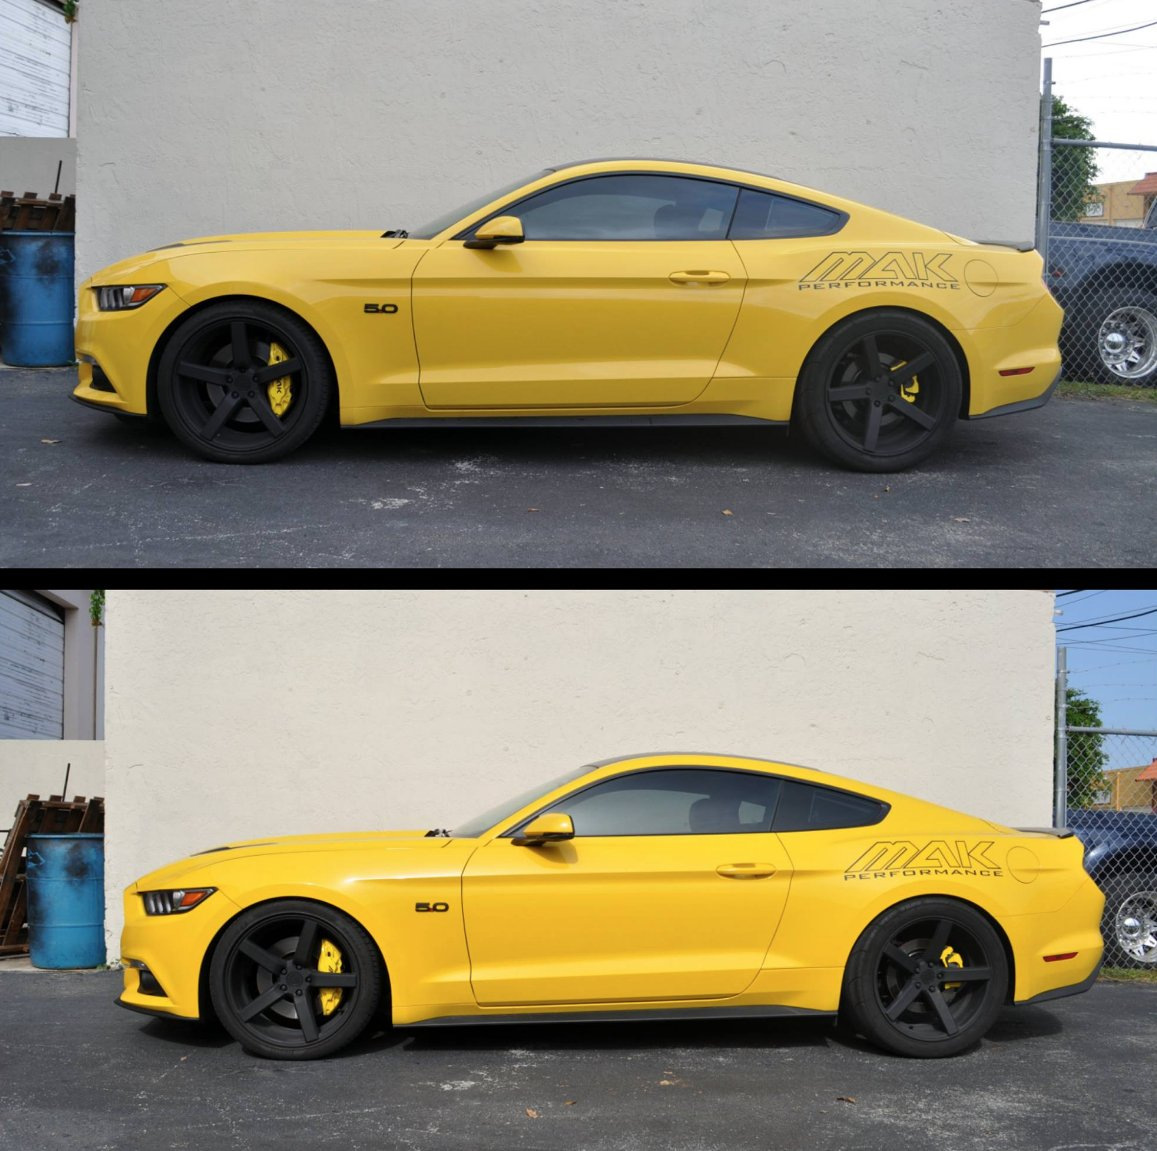 RT BMRSuspension: MAK Performance providing us with a good before and after shot to show the difference the BMR lowering springs makes on a S550 Mustang's stance.  #BMRsuspension #makperformance #BeforeAndAfter #Stance #mustang #fordperformance #S550 #lo… https://t.co/UFWc5jj9Fn